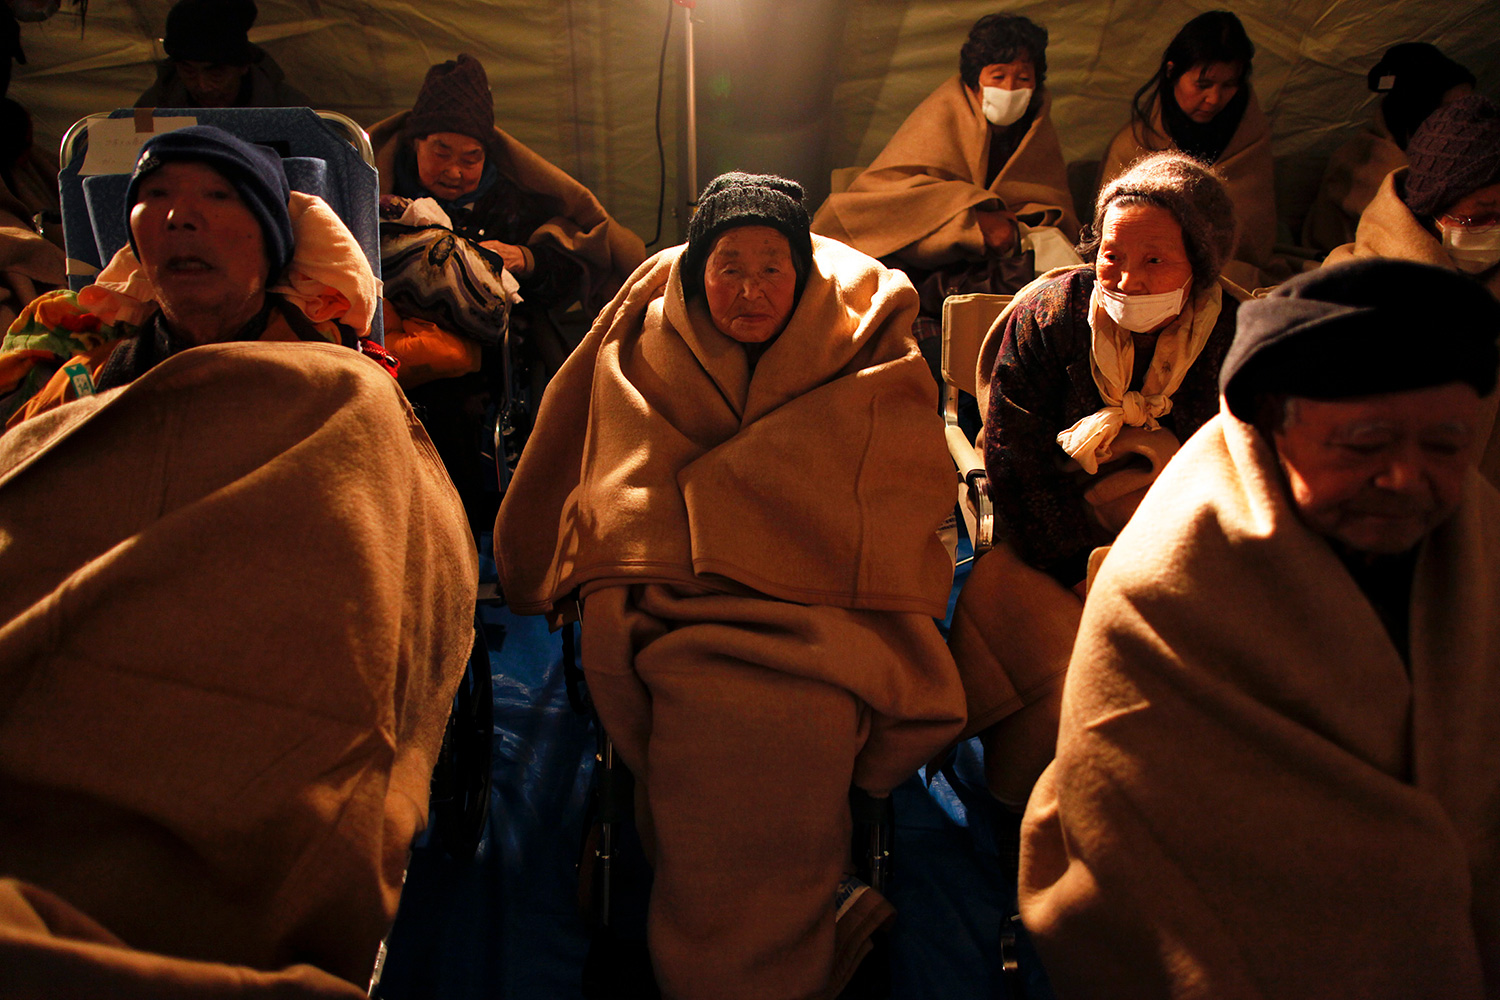 Photo shows a half dozen people all wrapping themselves in generously sized fluffy brown blankets.